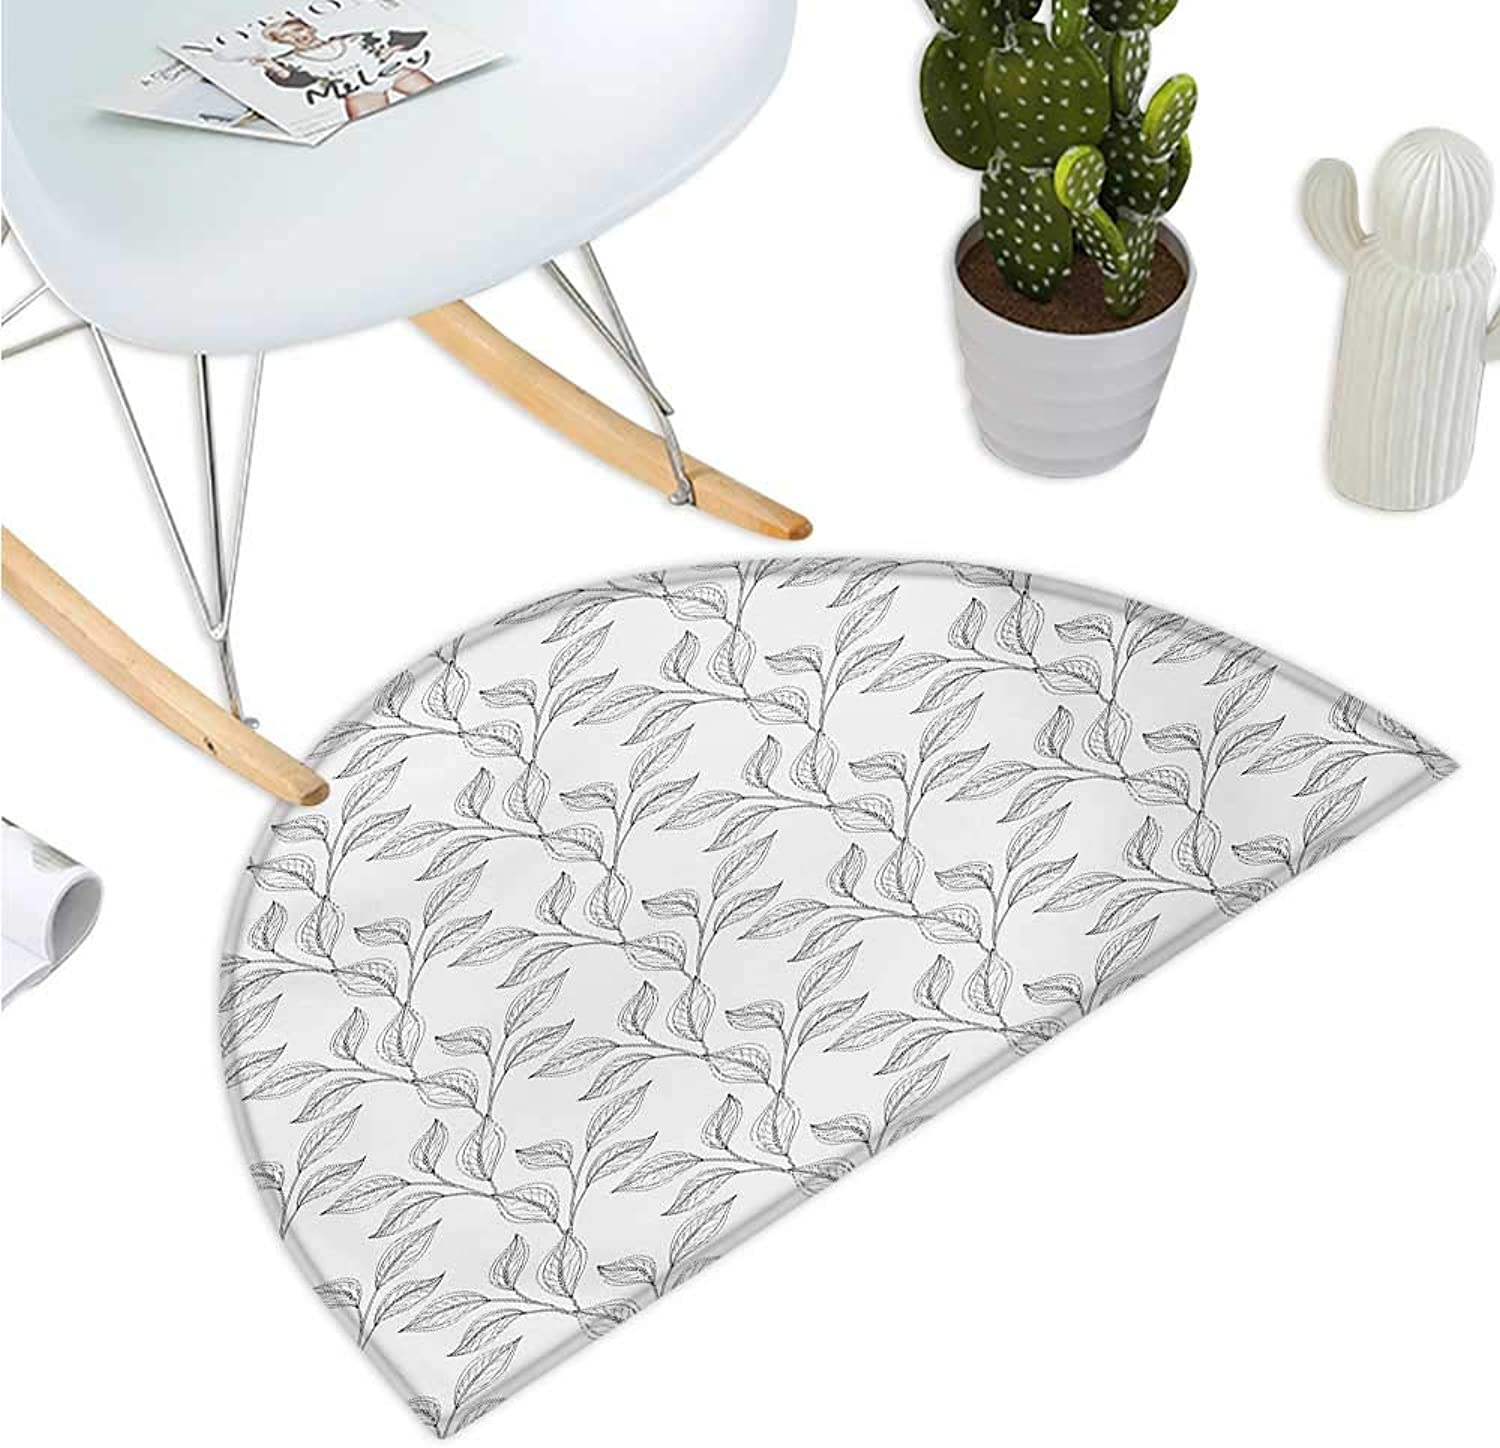 Black and White Half Round Door mats Monochrome Garden Pattern with Stylized Leaves Bohemian Natural Theme Bathroom Mat H 39.3  xD 59  Black White